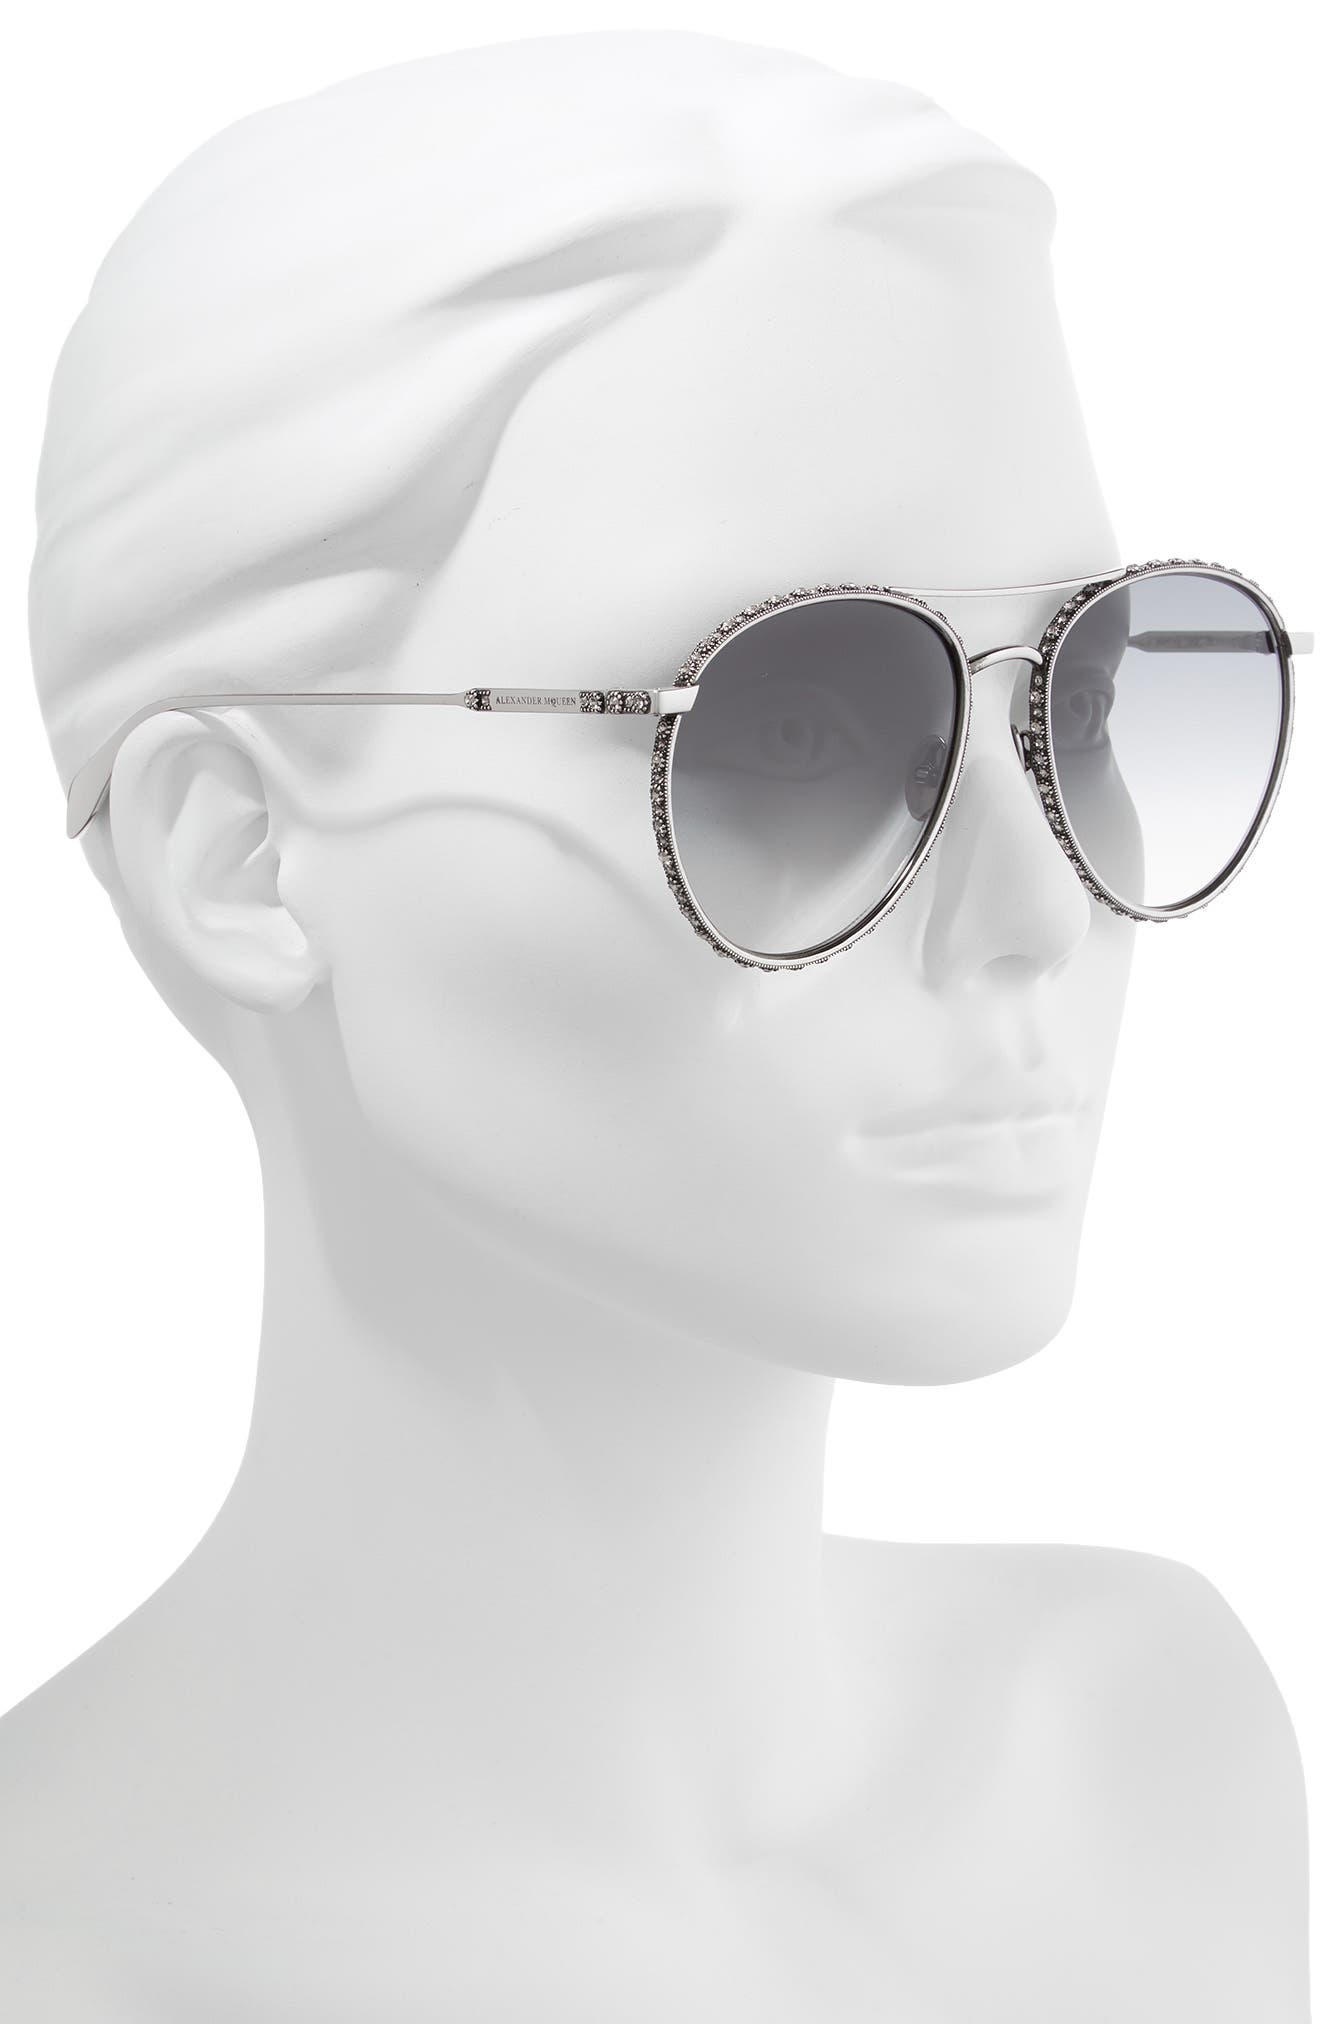 58mm Swarovski Crystal Trim Round Aviator Sunglasses,                             Alternate thumbnail 2, color,                             SILVER